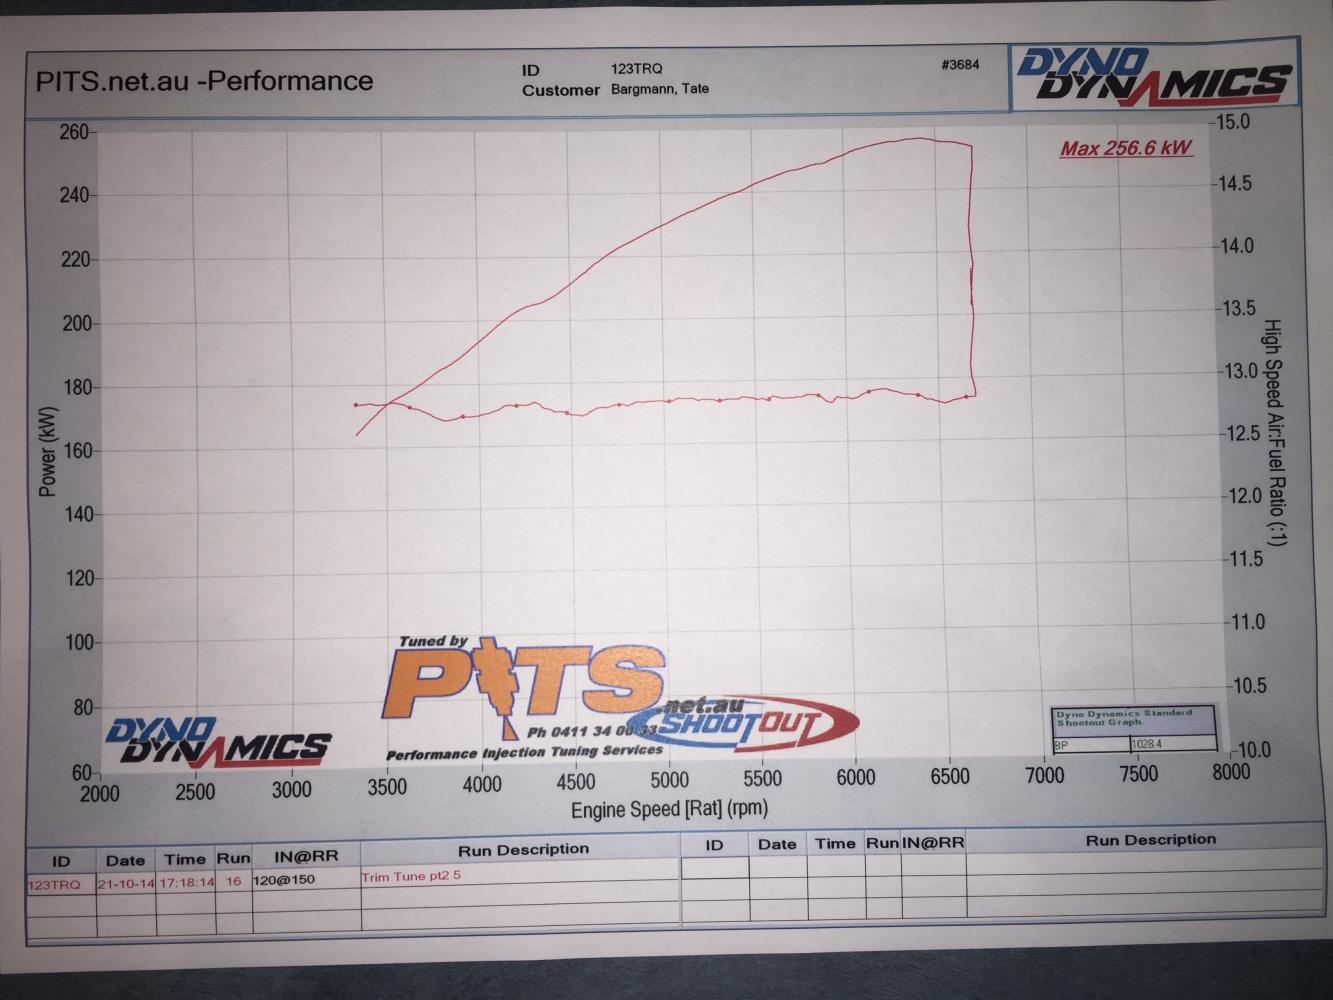 LS1 chasing 300rwkw, reached 260rwkw any suggestions on